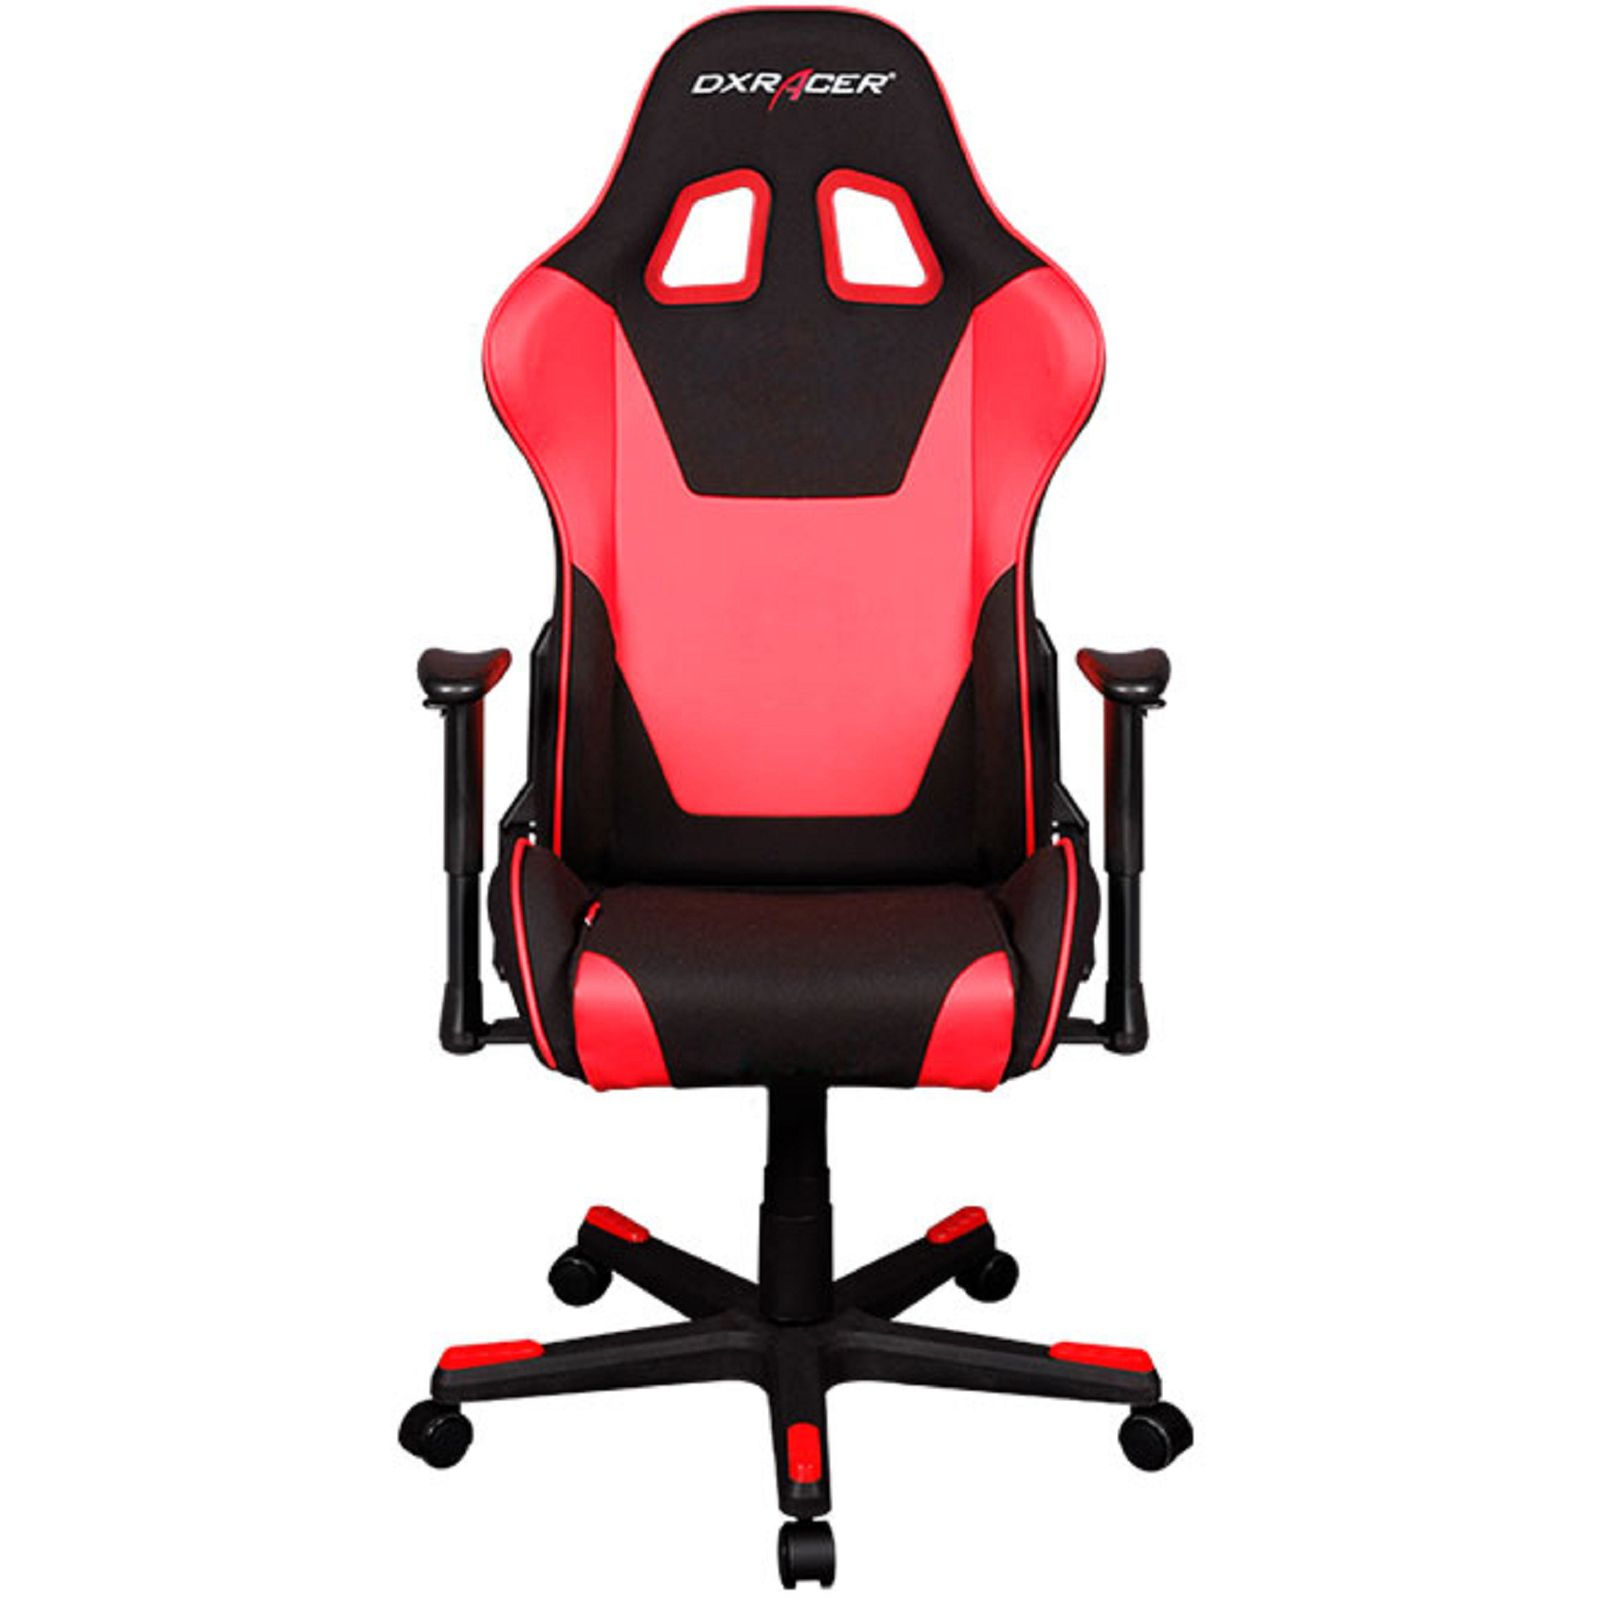 Dxracer Fd101nr Office Chair Gaming Chair Automotive Seat Computer Black And Red Chairs Gaming Chair Blue Chair Dxracer